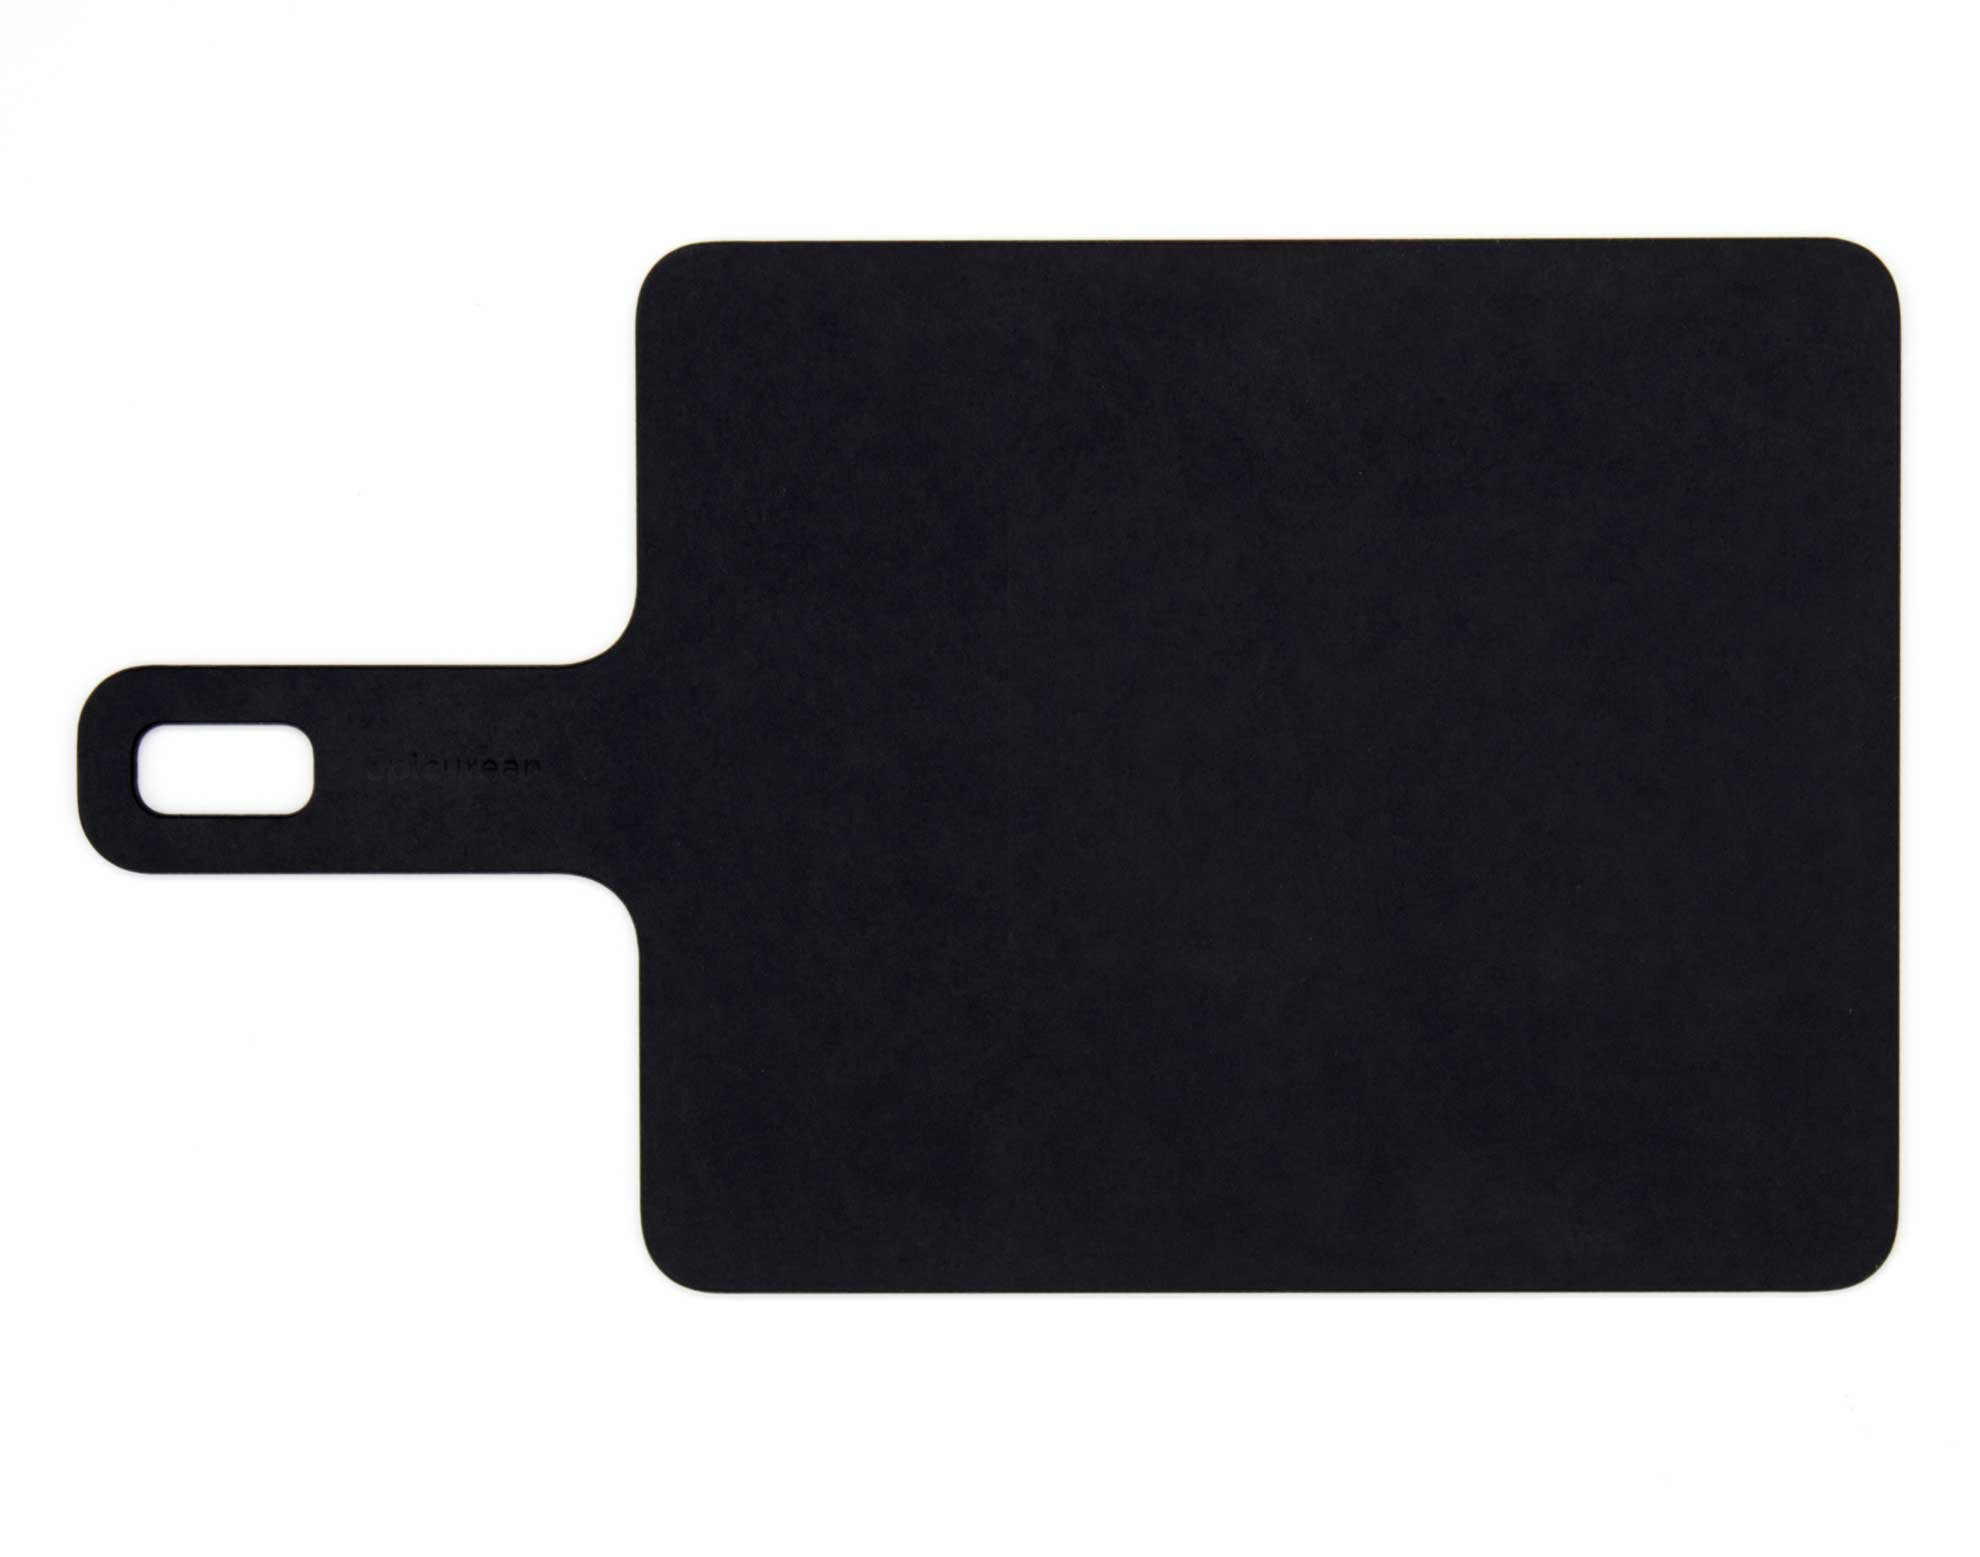 Epicurean 008-090702 Handy Series Cutting Board with Handle, 9-Inch by 7-Inch, Slate